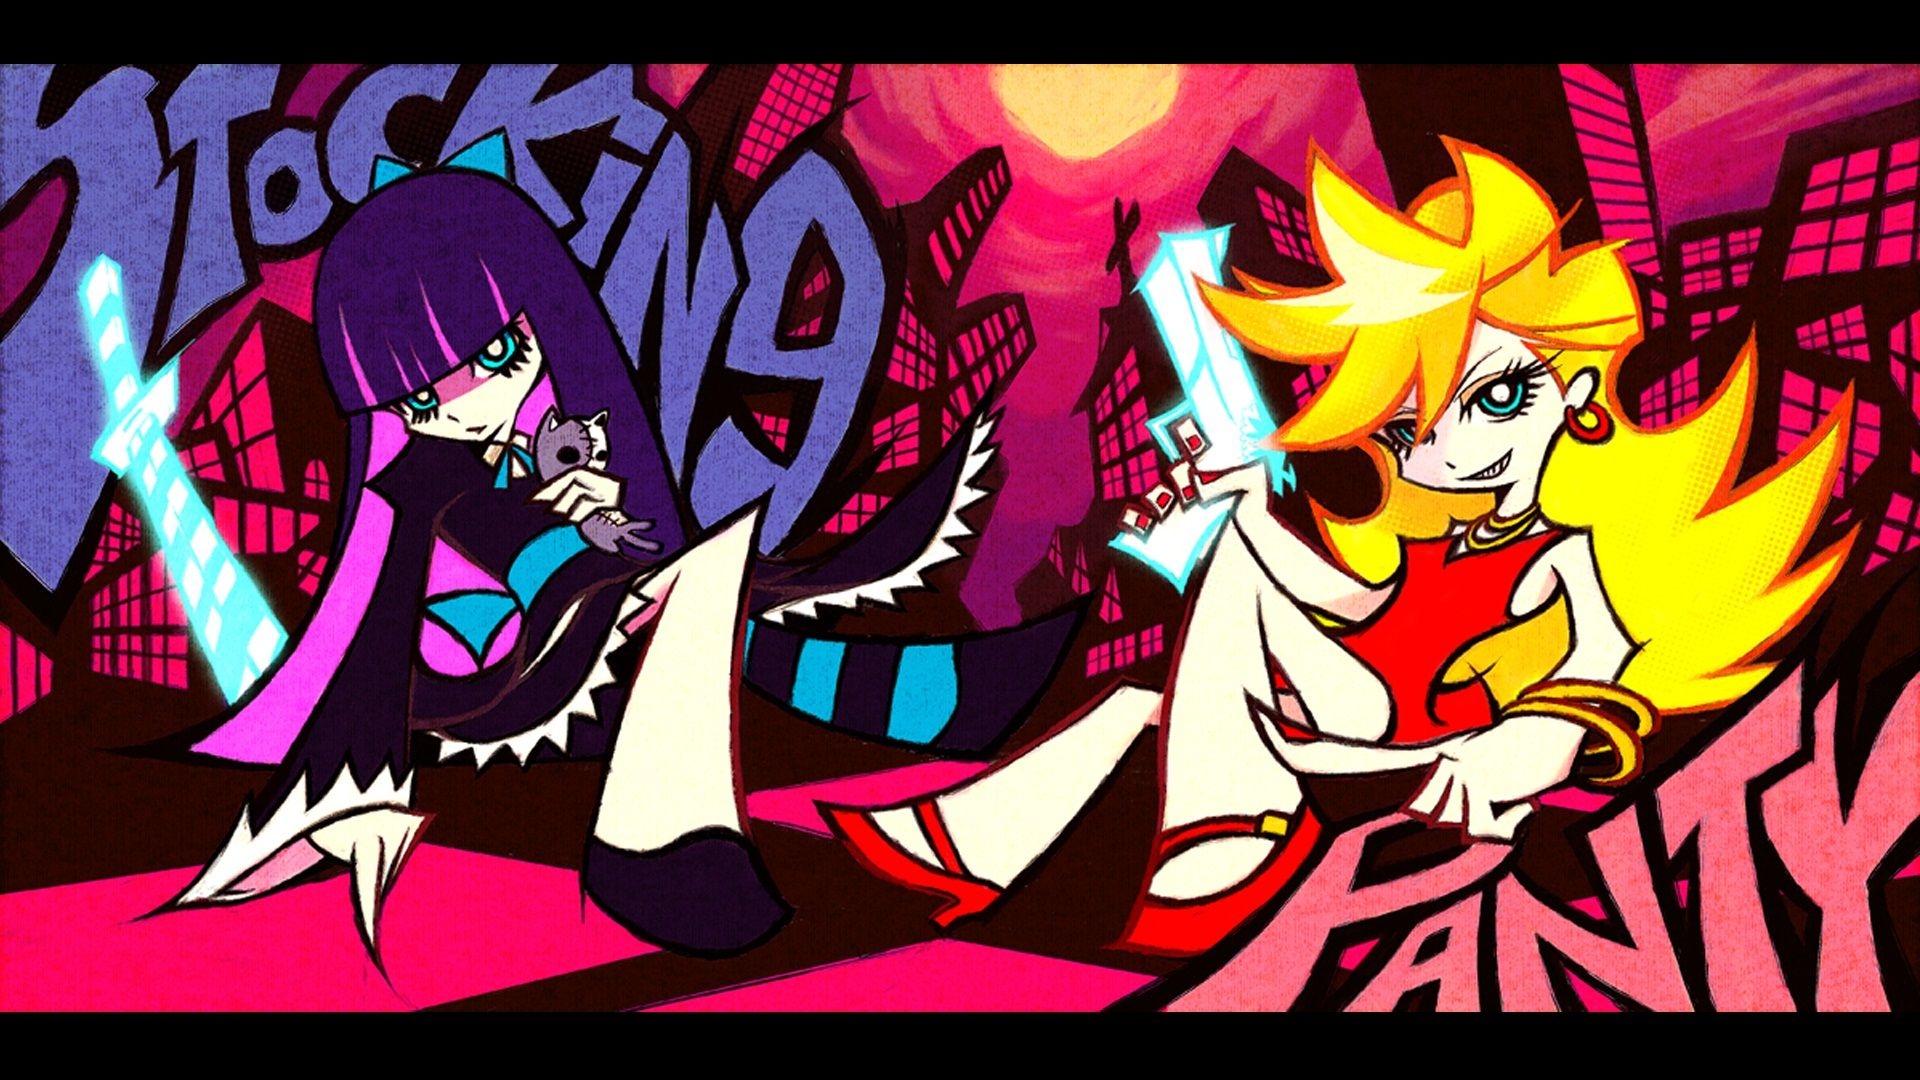 Anime Panty Stocking With Garterbelt Wallpaper Panty And